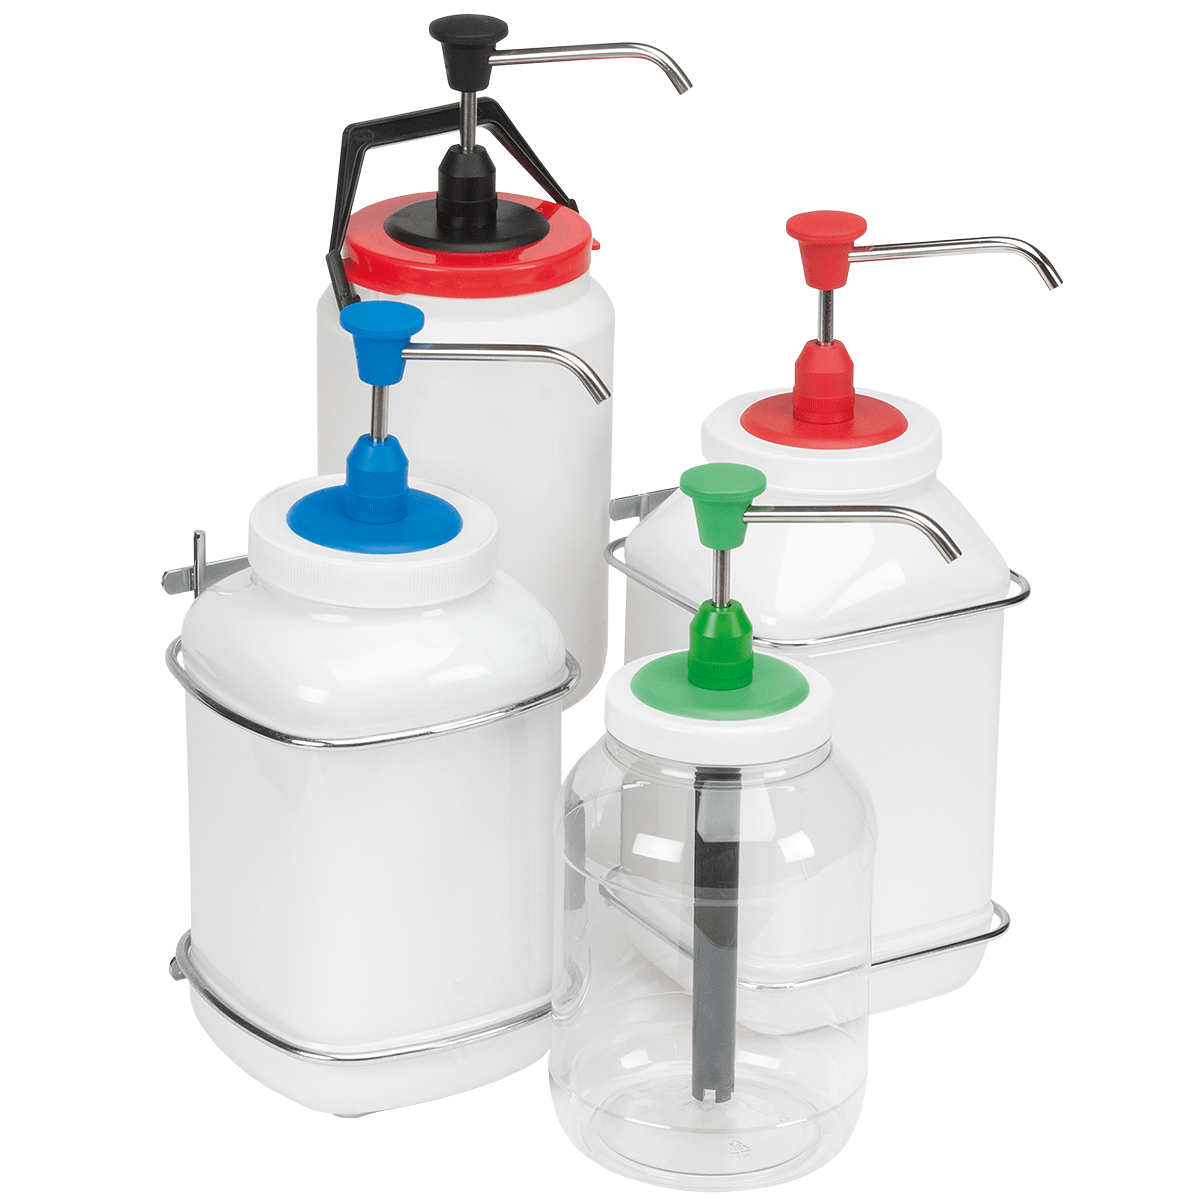 Soap Dispenser For Containers